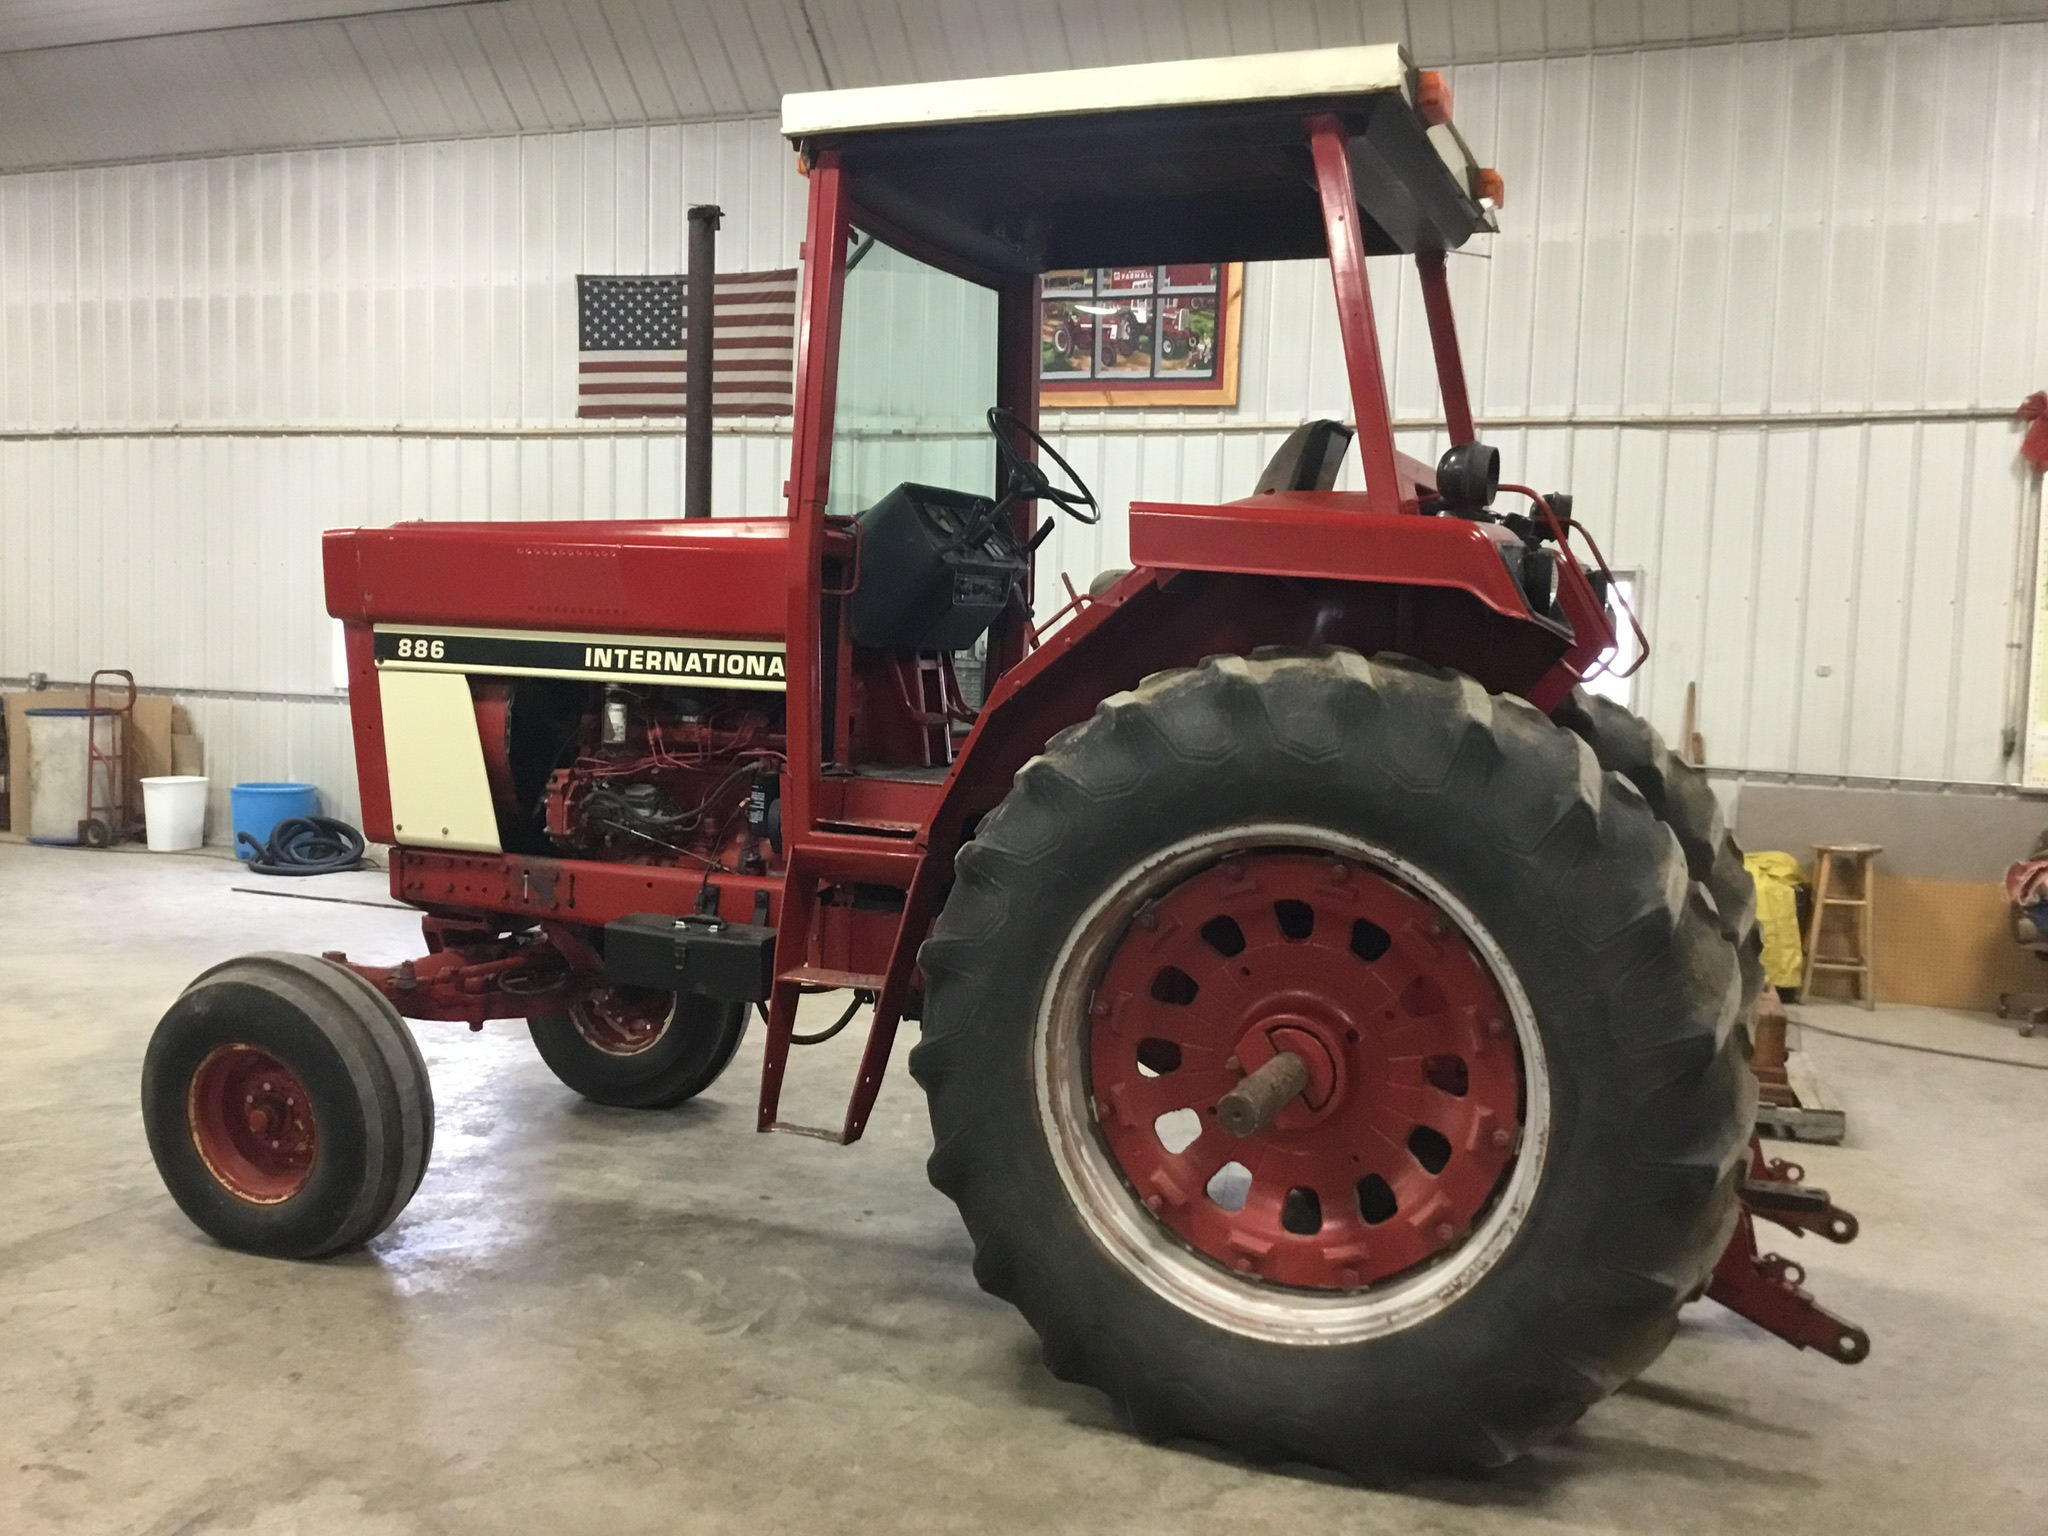 1976 International 886 Diesel, 4 Post Rops, 2 Hyd. Remotes, 3 Pt. Hitch, PTO, Serial #009595 - Image 3 of 8